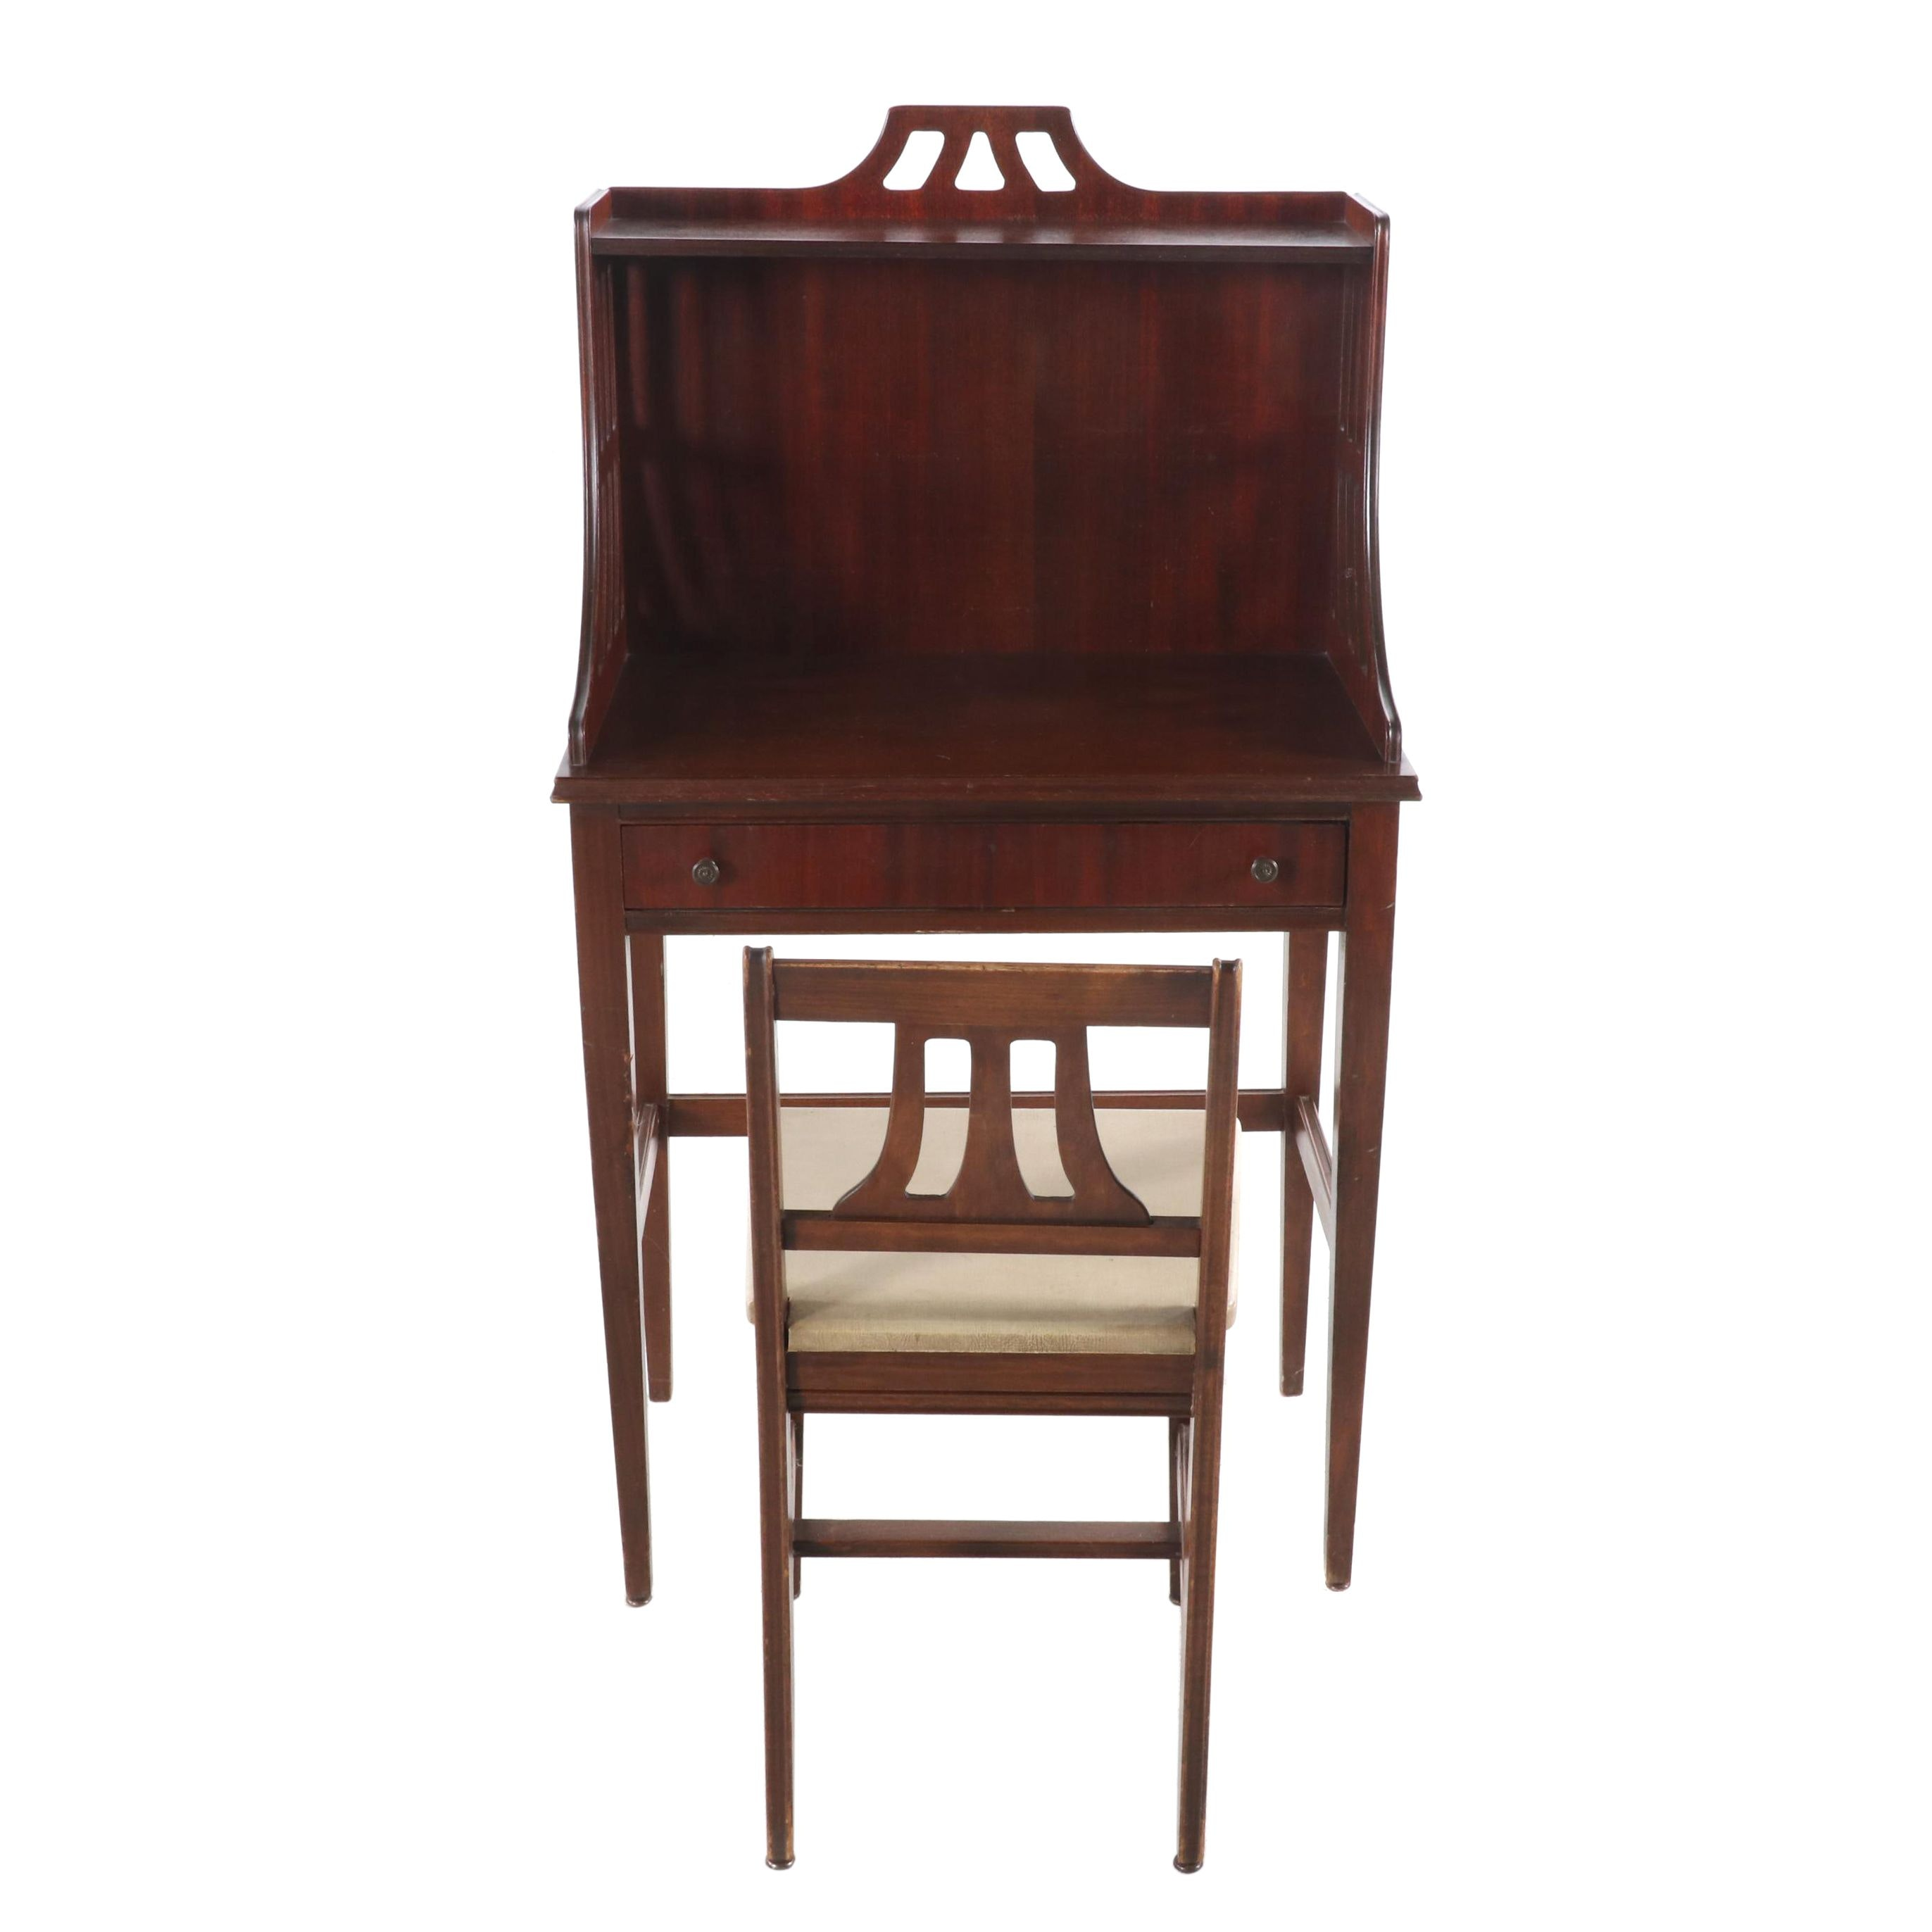 Federal Style Mahogany Writing Desk with Chair, Mid 20th Century